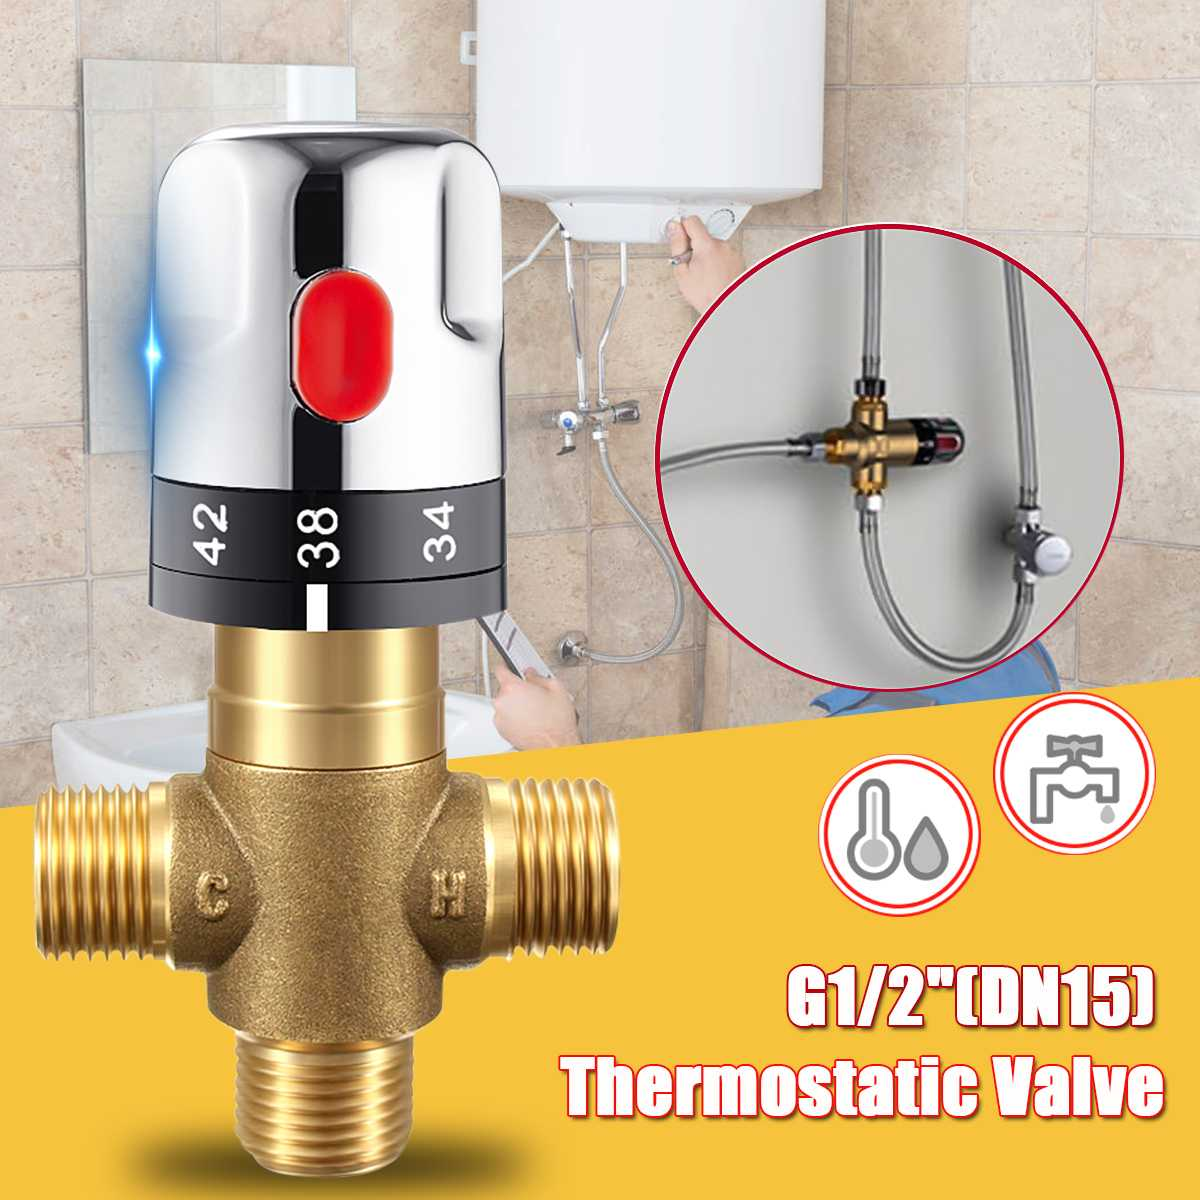 NEW Xueqin 1PC Brass Pipe Thermostat Faucet Thermostatic Mixing Valve Bathroom Water Temperature Control Faucet Cartridges